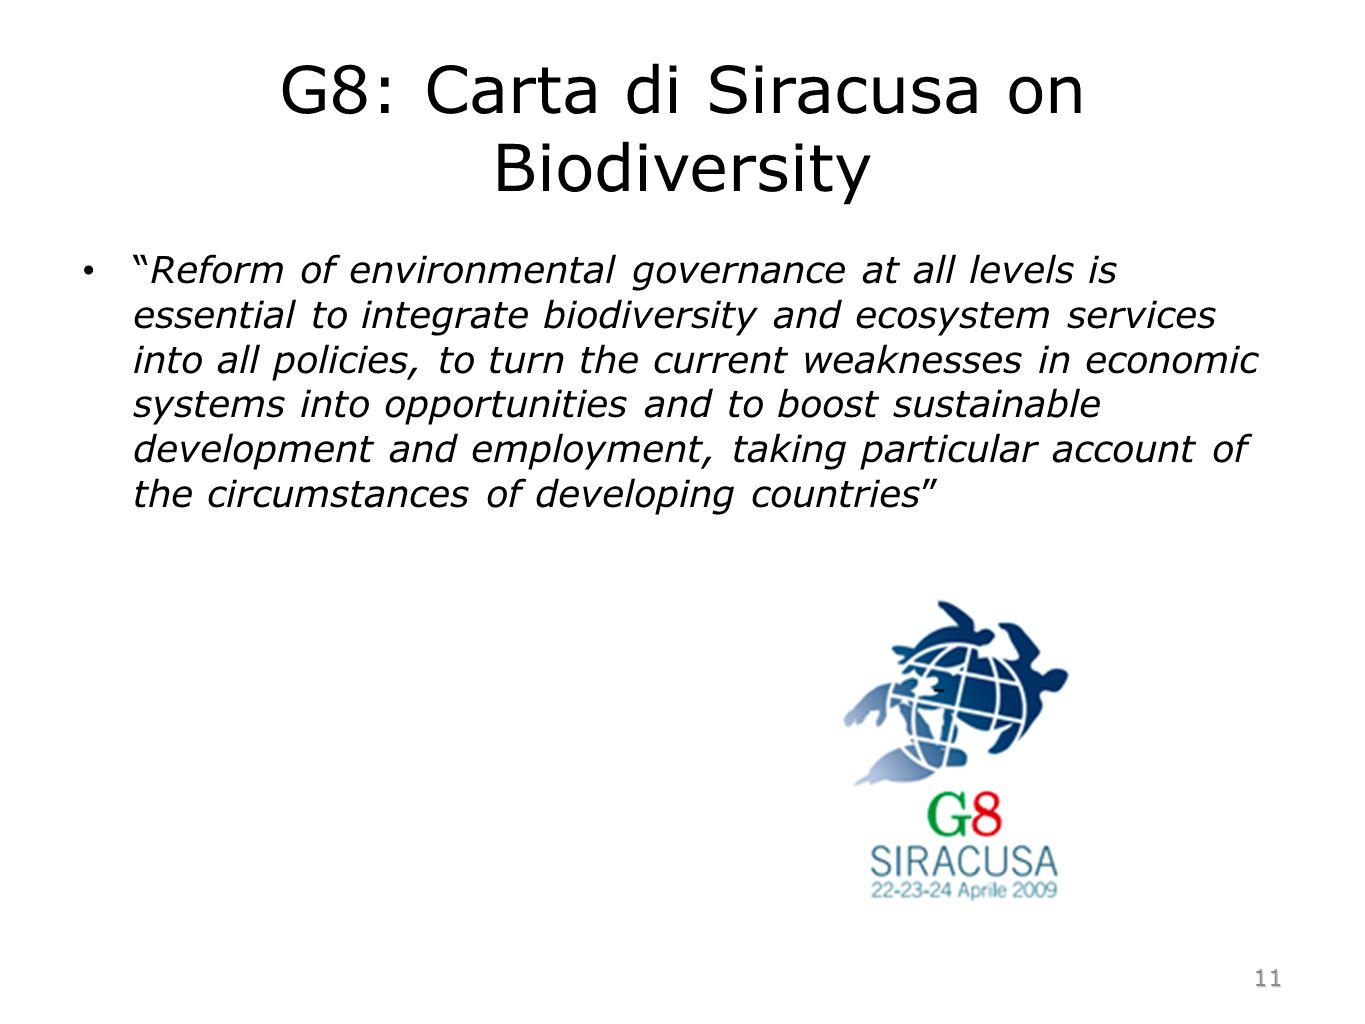 G8: Carta di Siracusa on Biodiversity Reform of environmental governance at all levels is essential to integrate biodiversity and ecosystem services i